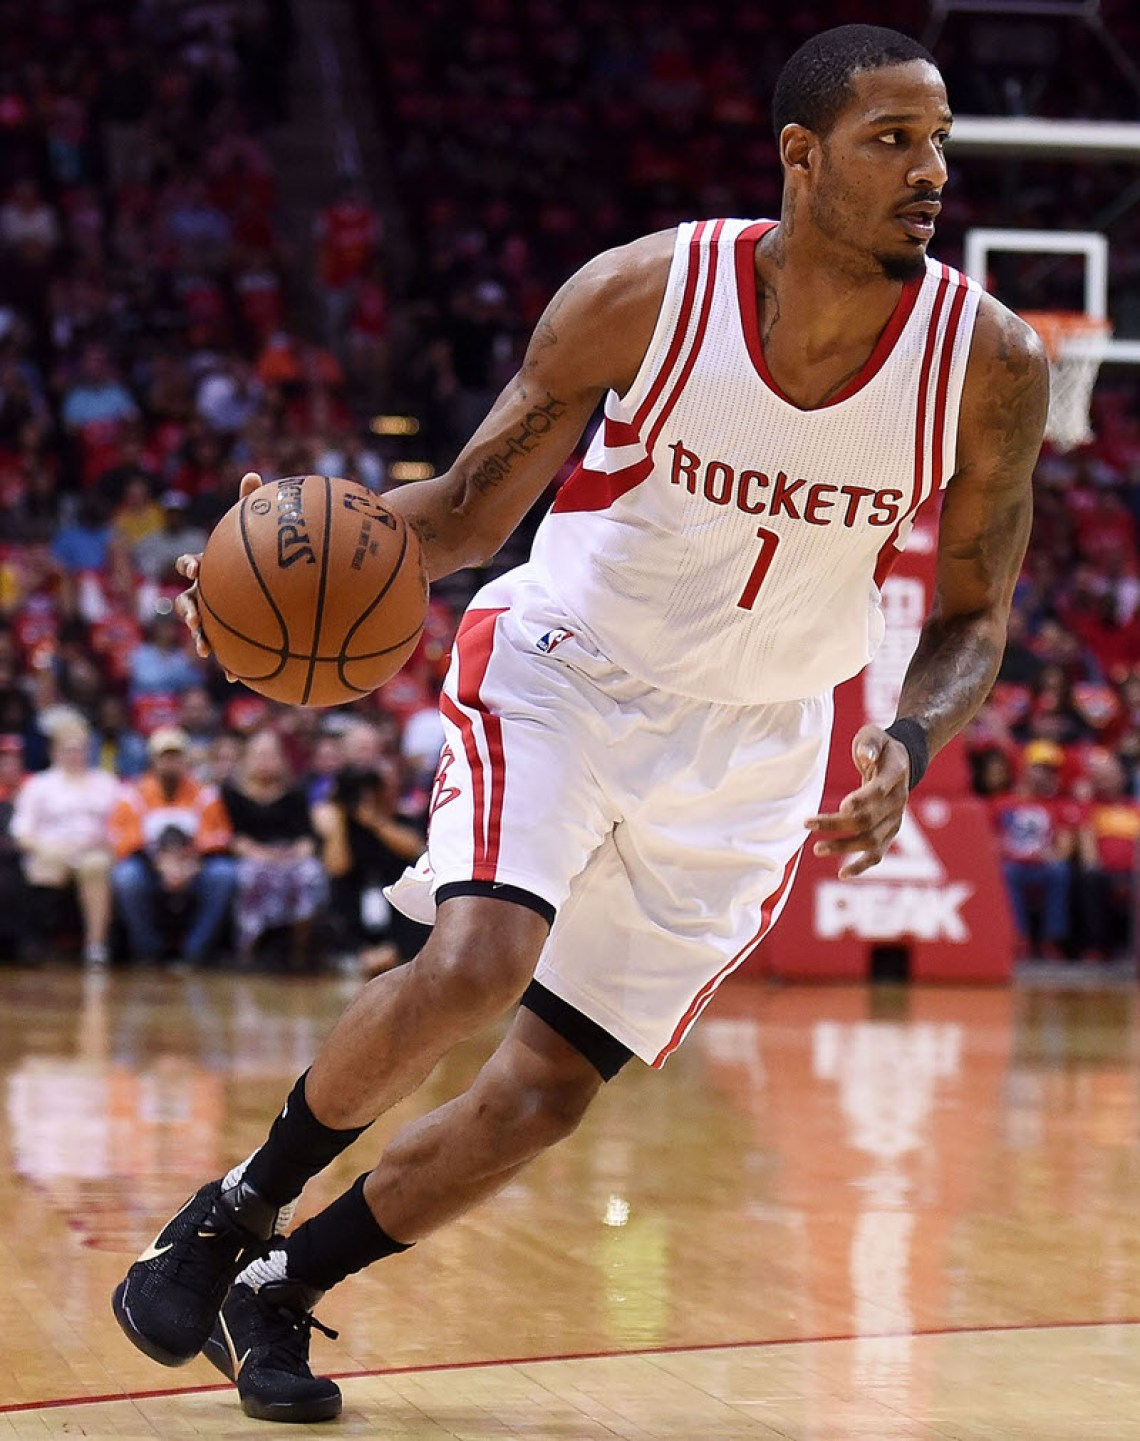 HOUSTON, TEXAS - APRIL 13:  Trevor Ariza #1 of the Houston Rockets drives to the basket during the first half of a game against the Sacramento Kings at the Toyota Center on April 13, 2016 in Houston, Texas. NOTE TO USER: User expressly acknowledges and agrees that, by downloading and or using this photograph, User is consenting to the terms and conditions of the Getty Images License Agreement.  (Photo by Stacy Revere/Getty Images)